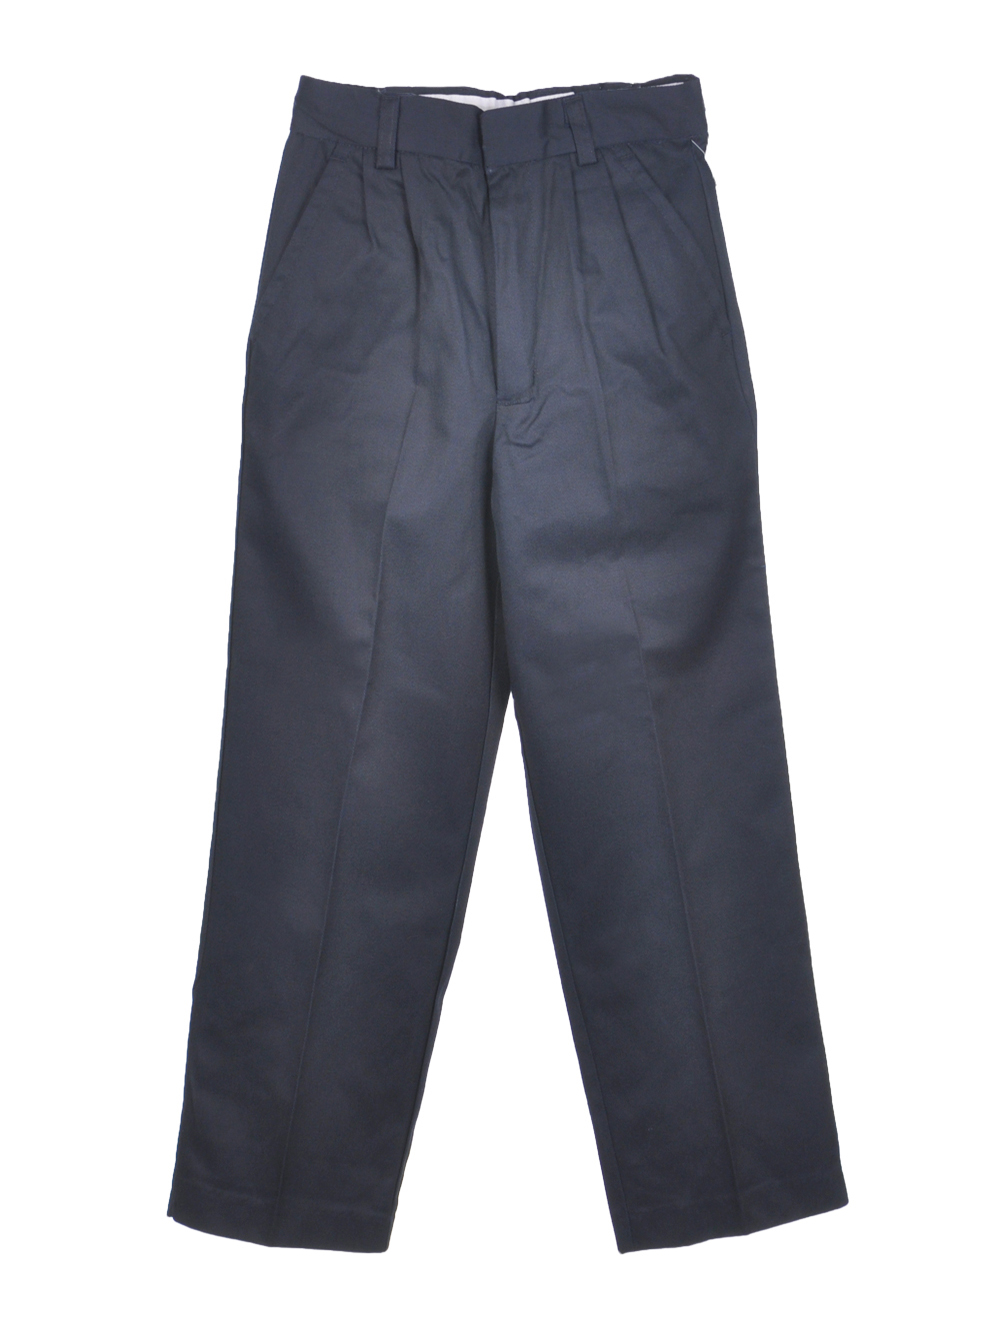 Image of Preferred School Uniforms Big Boys Pleated Pants Sizes 8  20  midnight navy 18